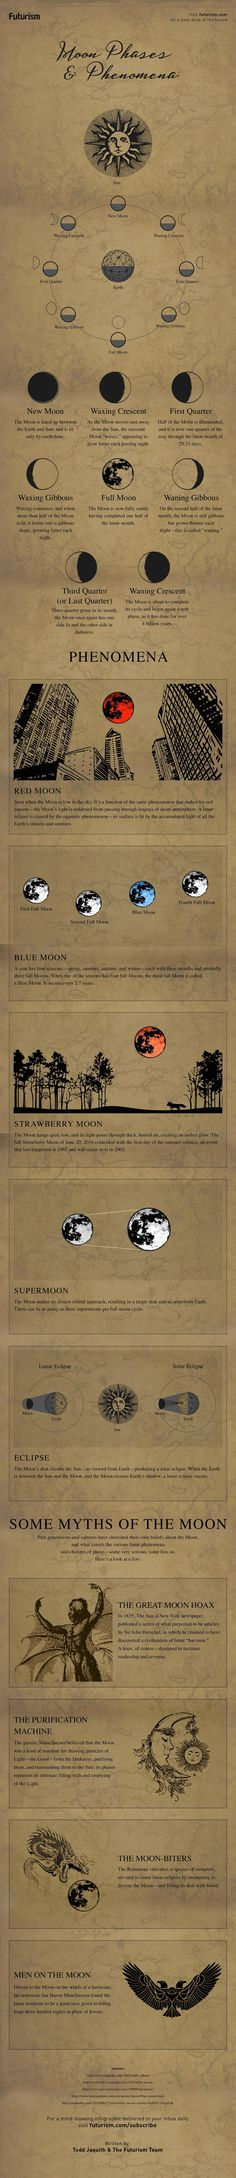 We've stared at it, howled at it, and composed poems to it…we've even landed on it.  Here's a look at the major lunar phases and phenomena— plus a few of the myths it's inspired.  http://futurism.com/images/moon-phases-and-phenomena-infographic/?utm_campaign=coschedule&utm_source=pinterest&utm_medium=Futurism&utm_content=Moon%20Phases%20and%20Phenomena%20%5BINFOGRAPHIC%5D